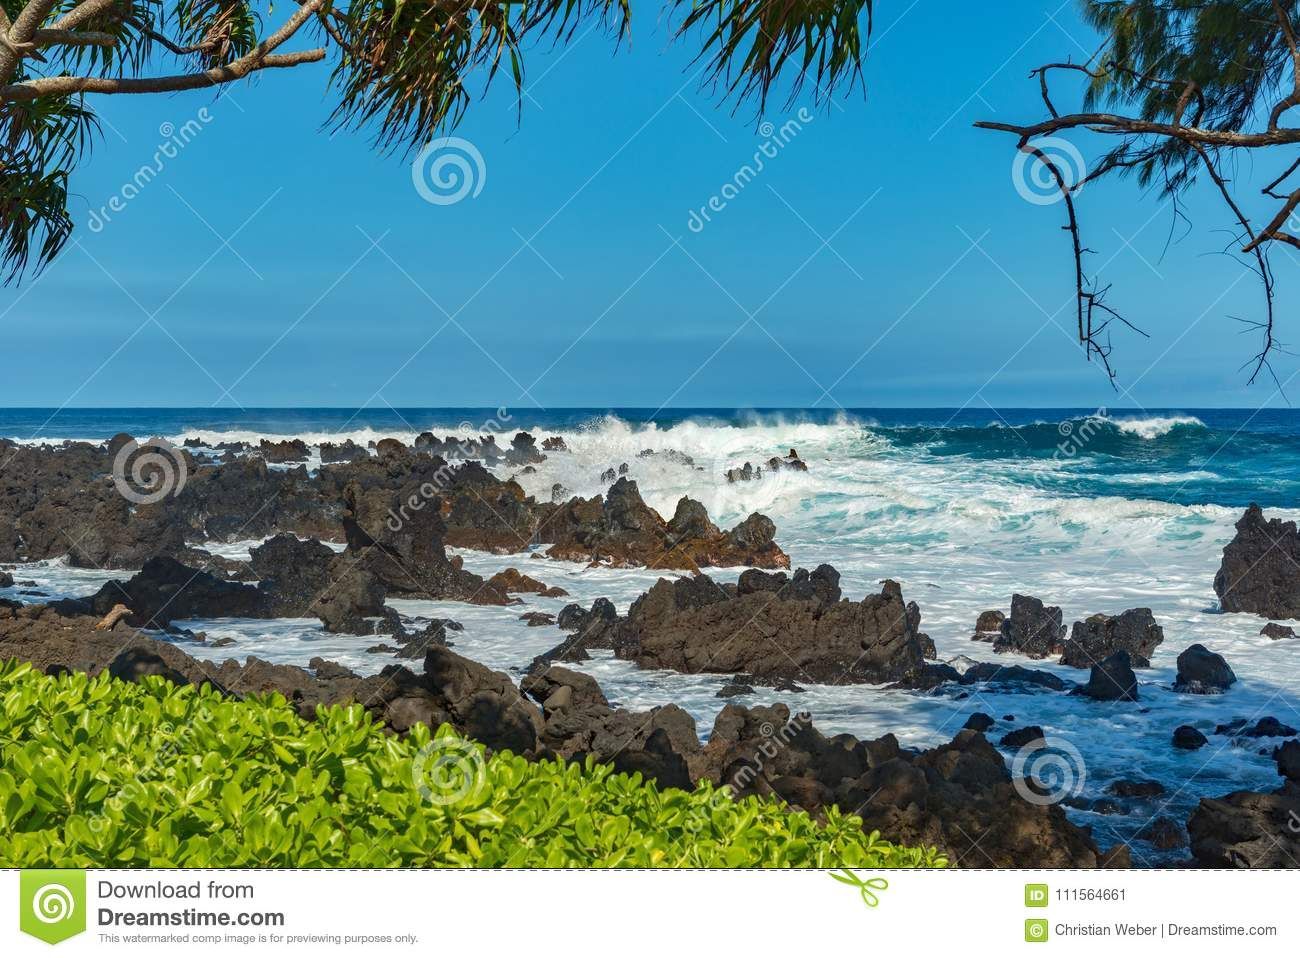 c534c8f02c Coastal view of the shore line with its black volcanic rocks and cliffs at  hana maui hawaii.